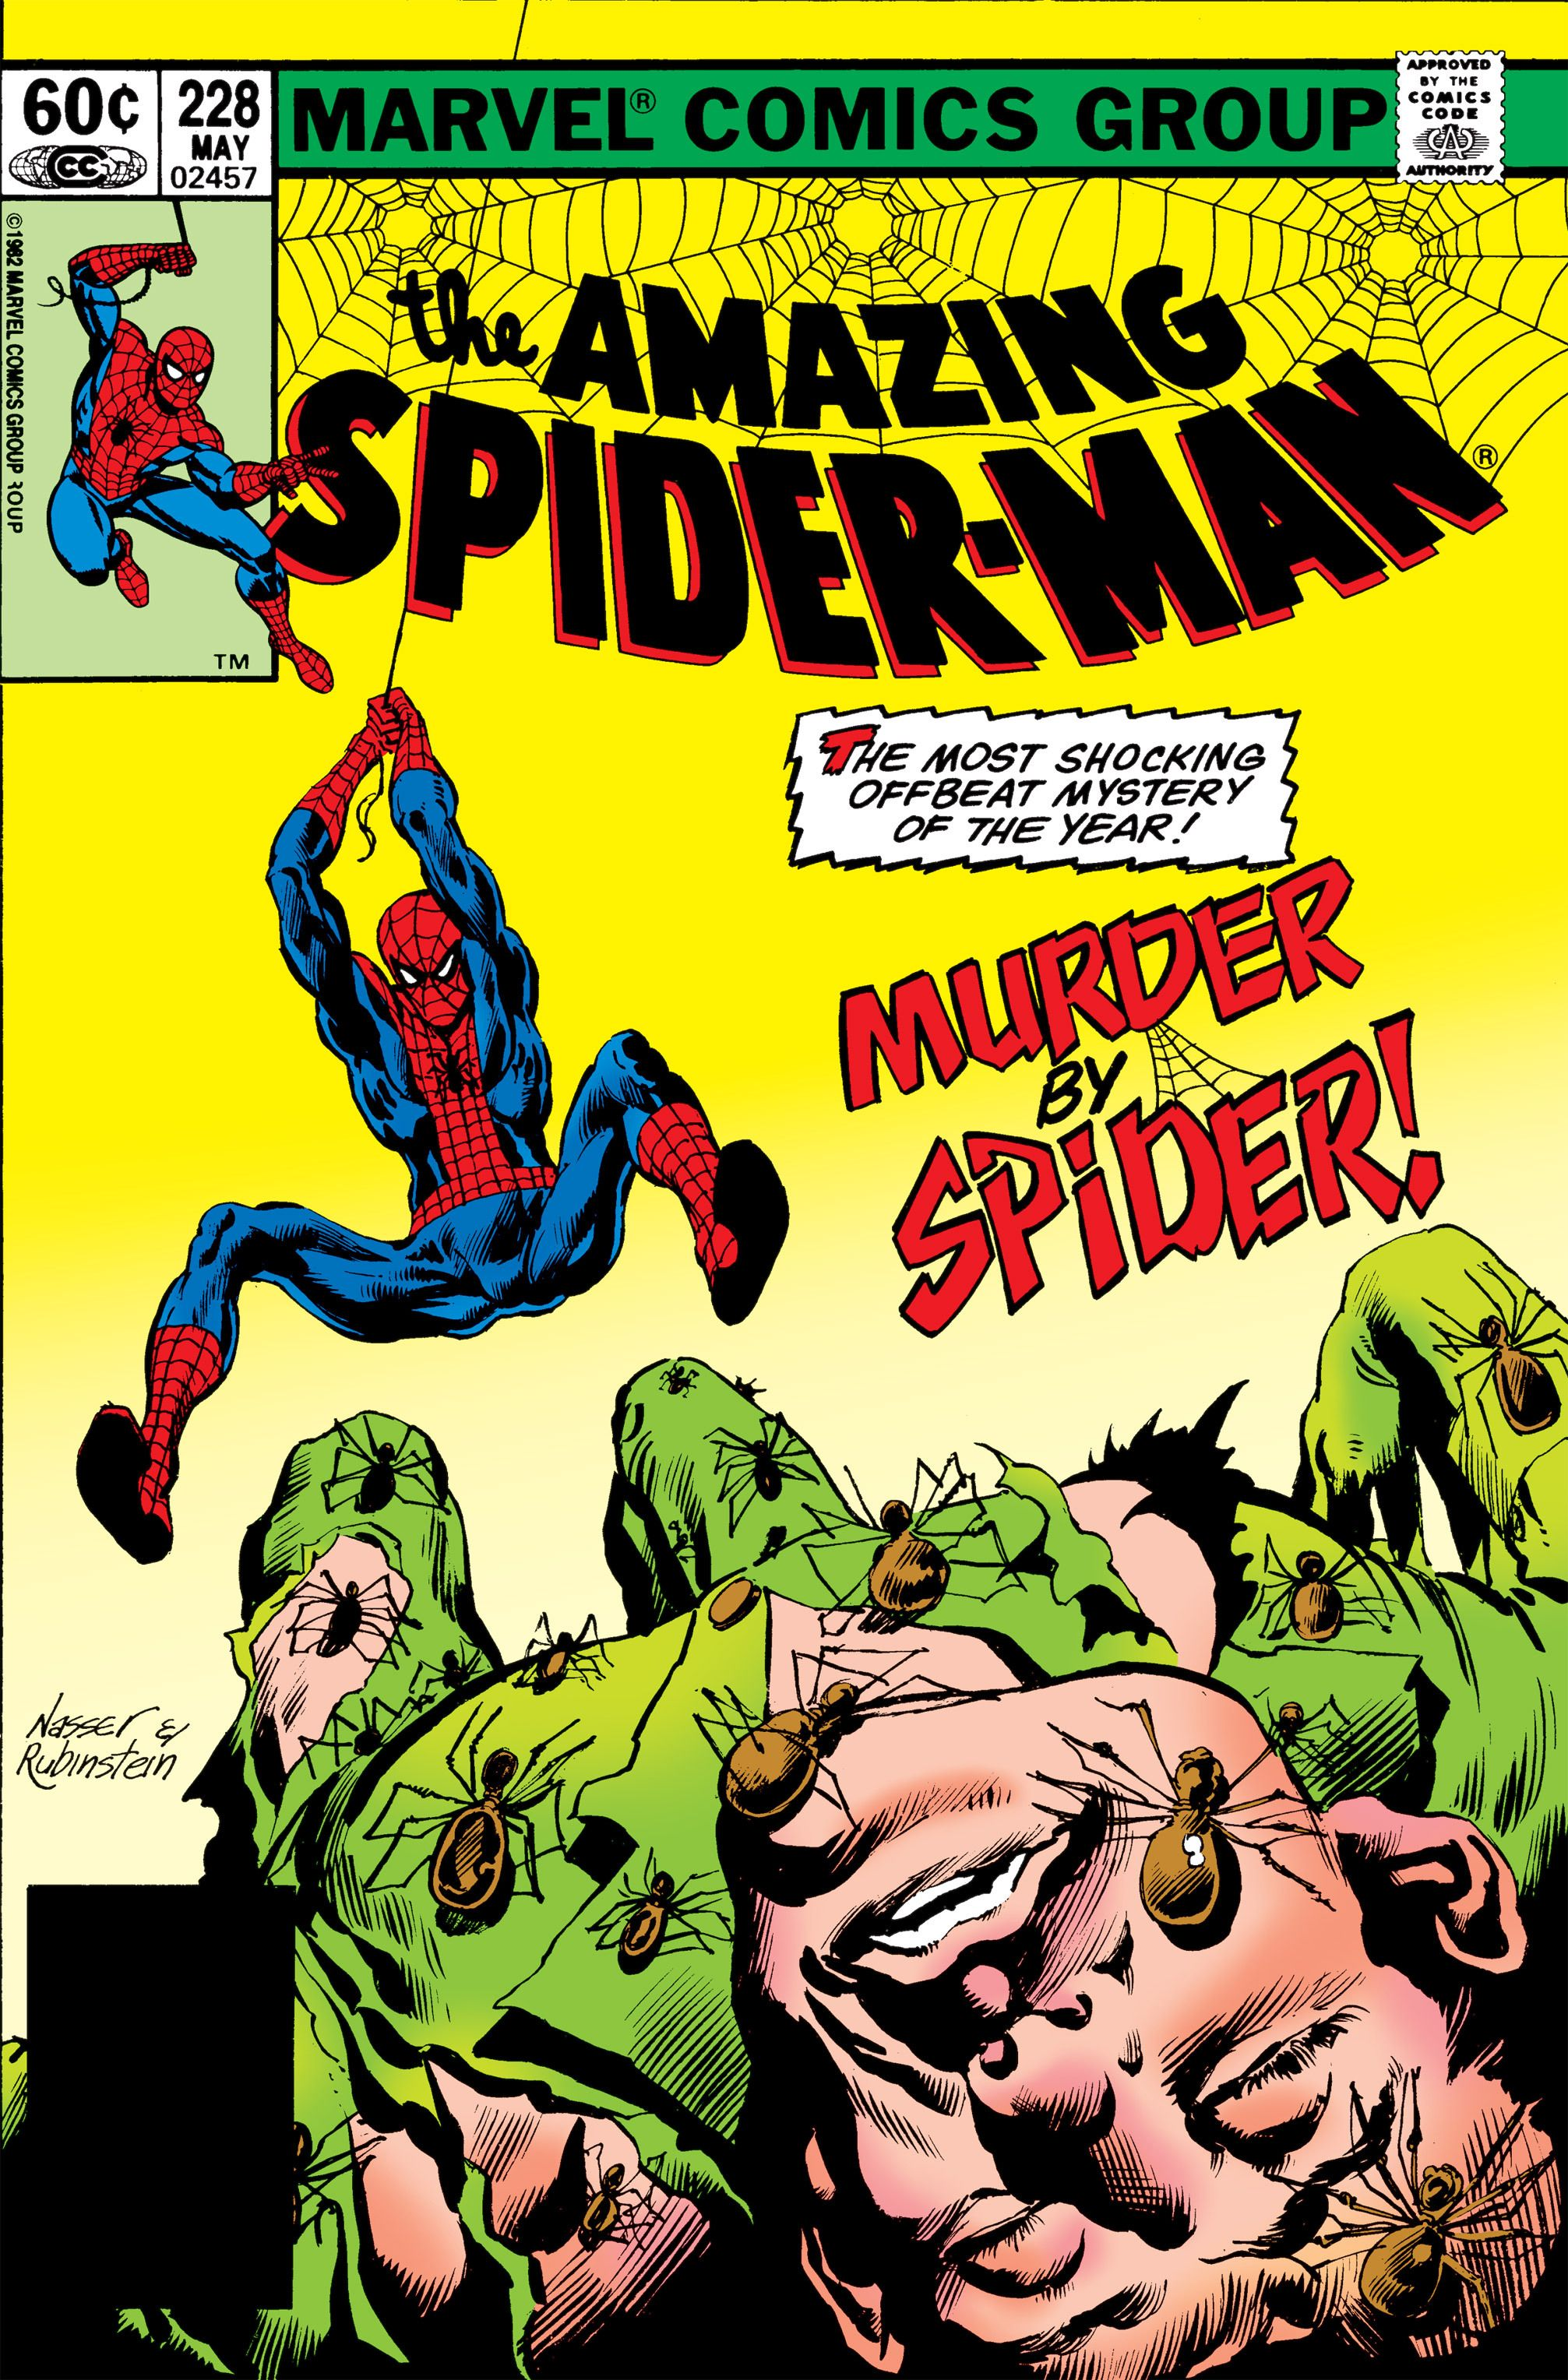 the amazing spider man 1963 issue 228 read the amazing spider